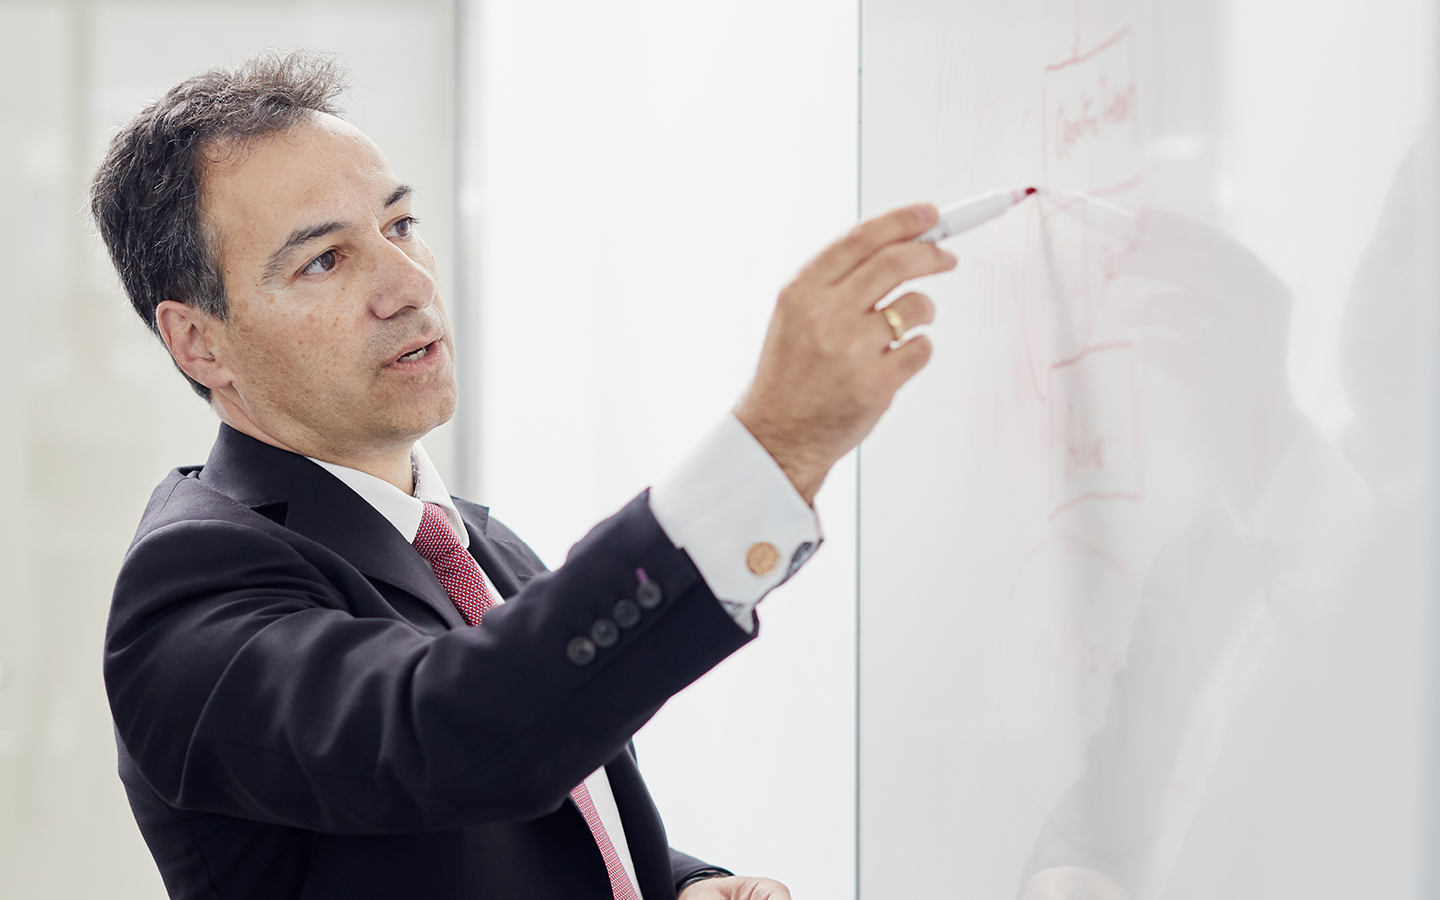 Man with pen pointing at notes written on a whiteboard